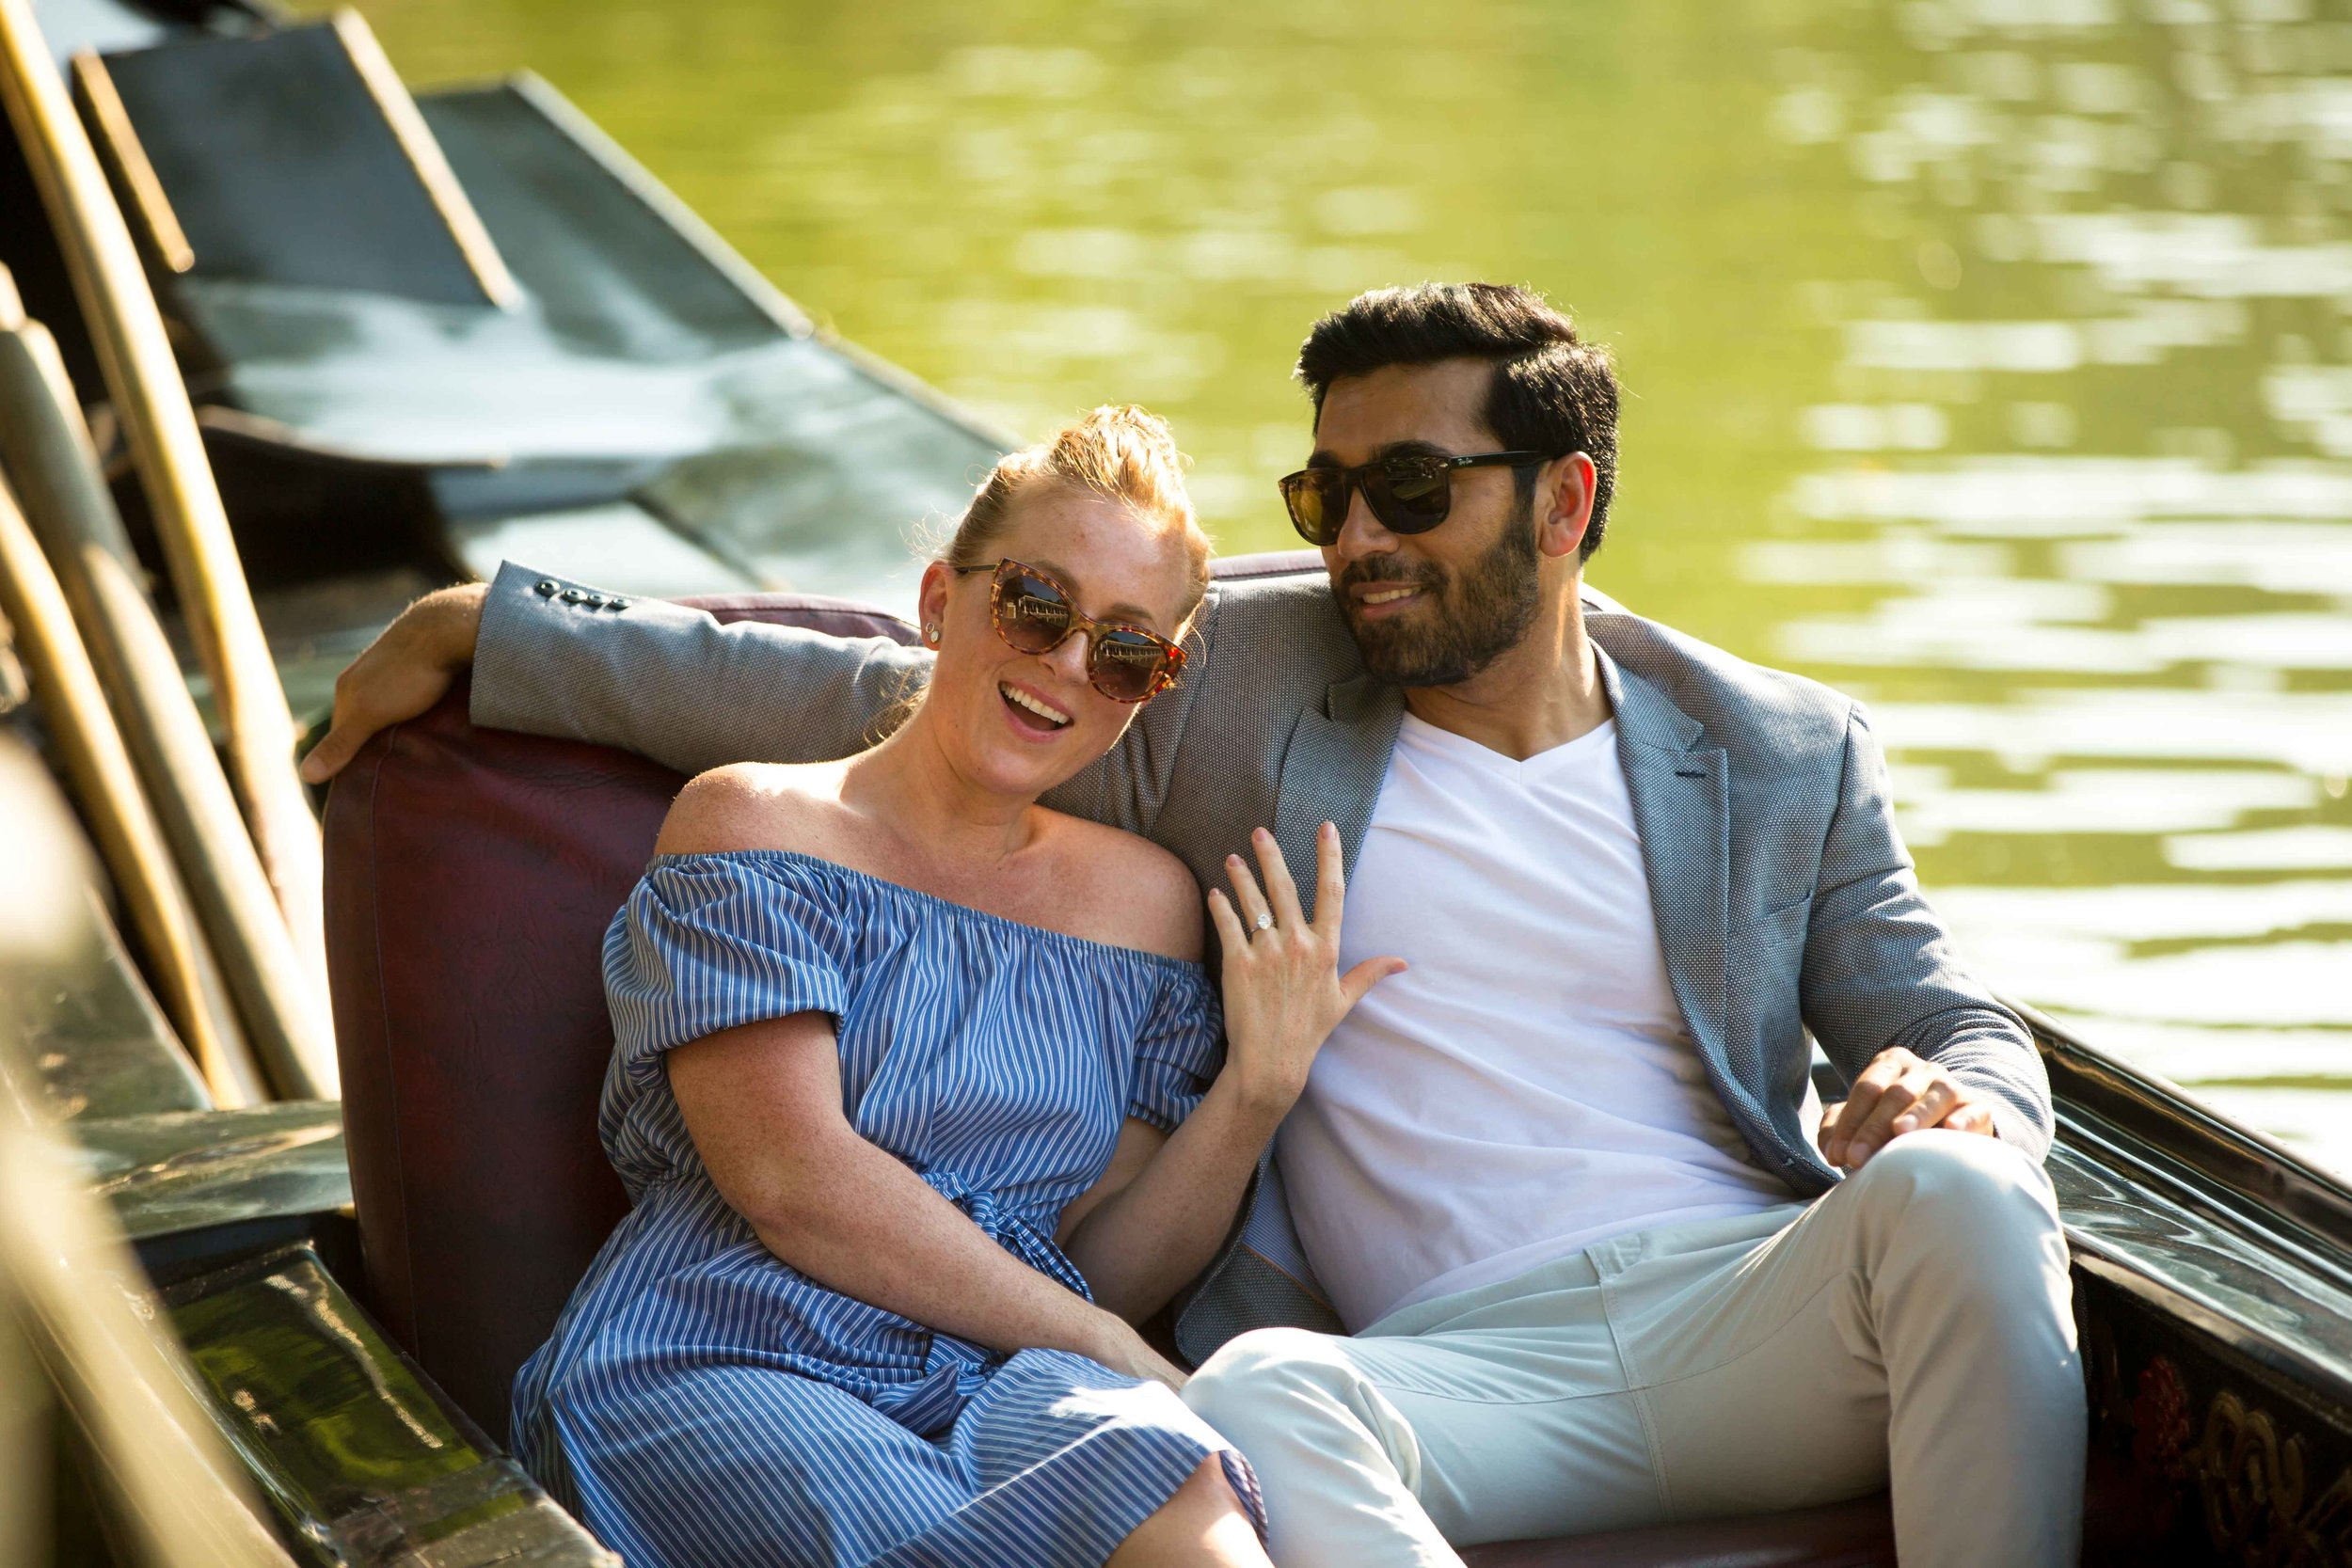 Central Park NYC Proposal Engagement Photo Shoot Session-10.jpg